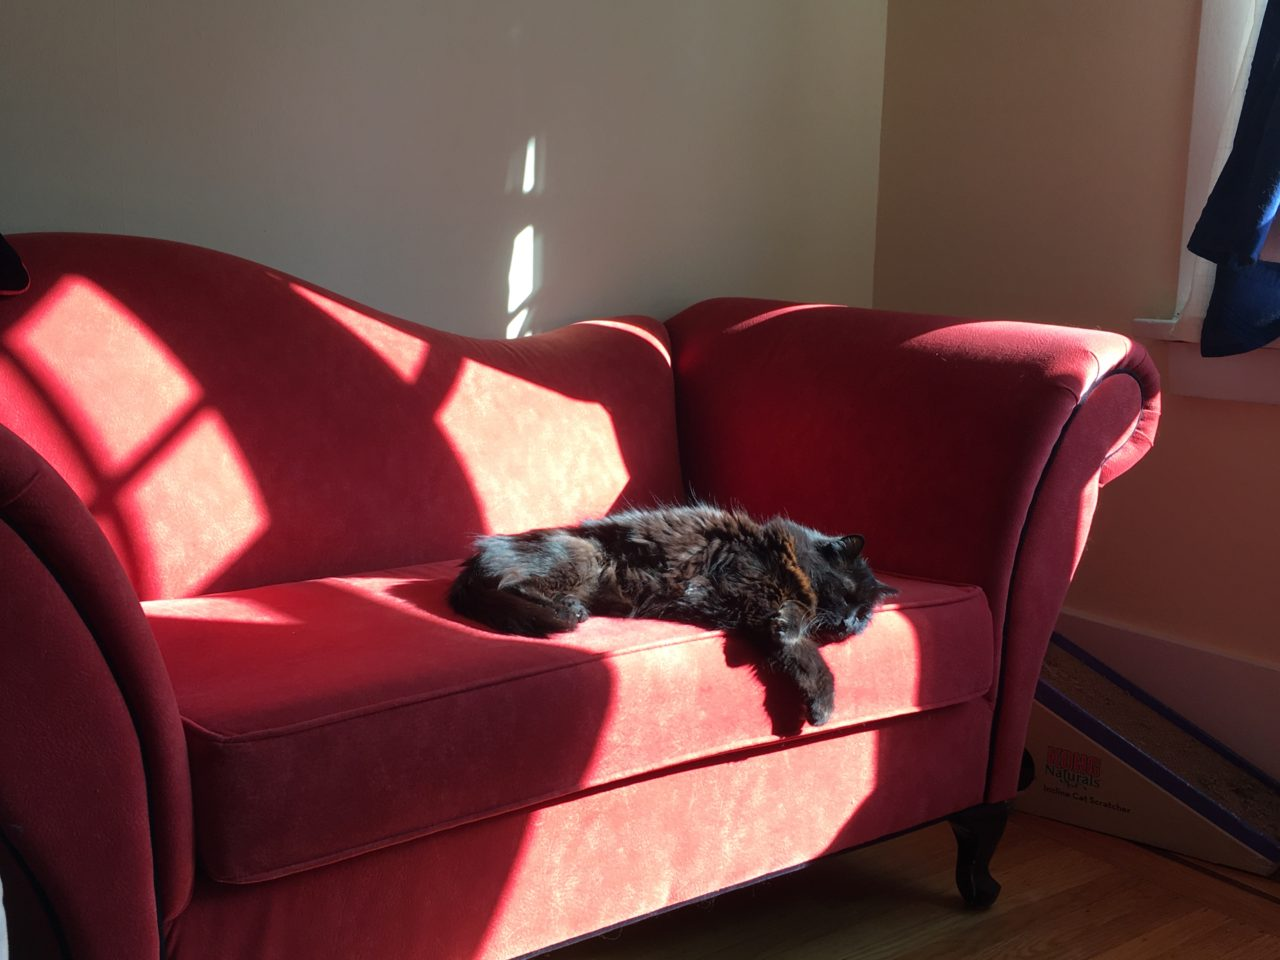 Cat lounging on red couch in full summer sun. Throwback Thursday for cats.